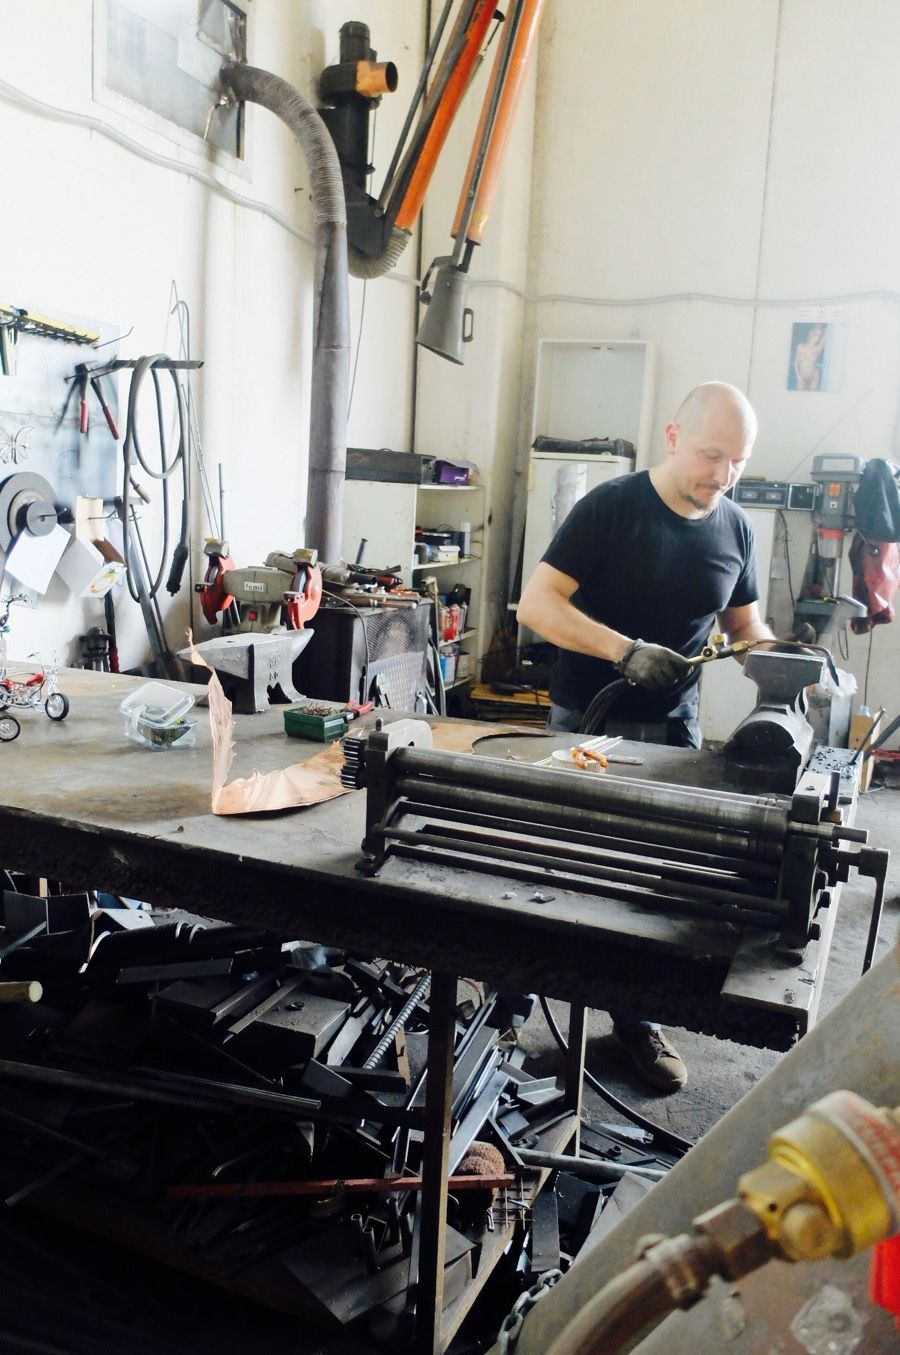 Discovering The Artisans Of Fabriano With Italian Stories - Girl in Florence